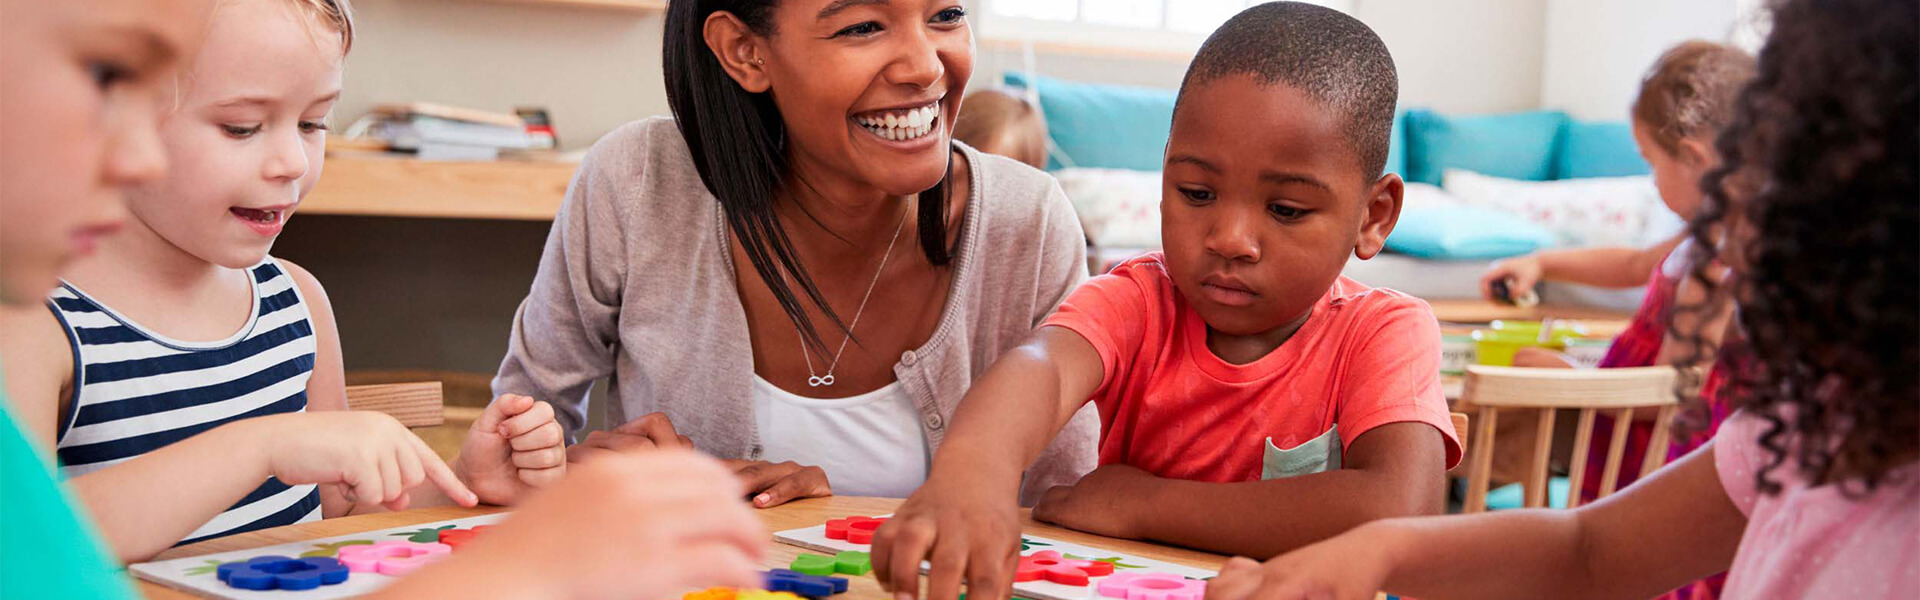 7 Key Phrases Montessori Teachers Use and Why We Should Use Them, Too